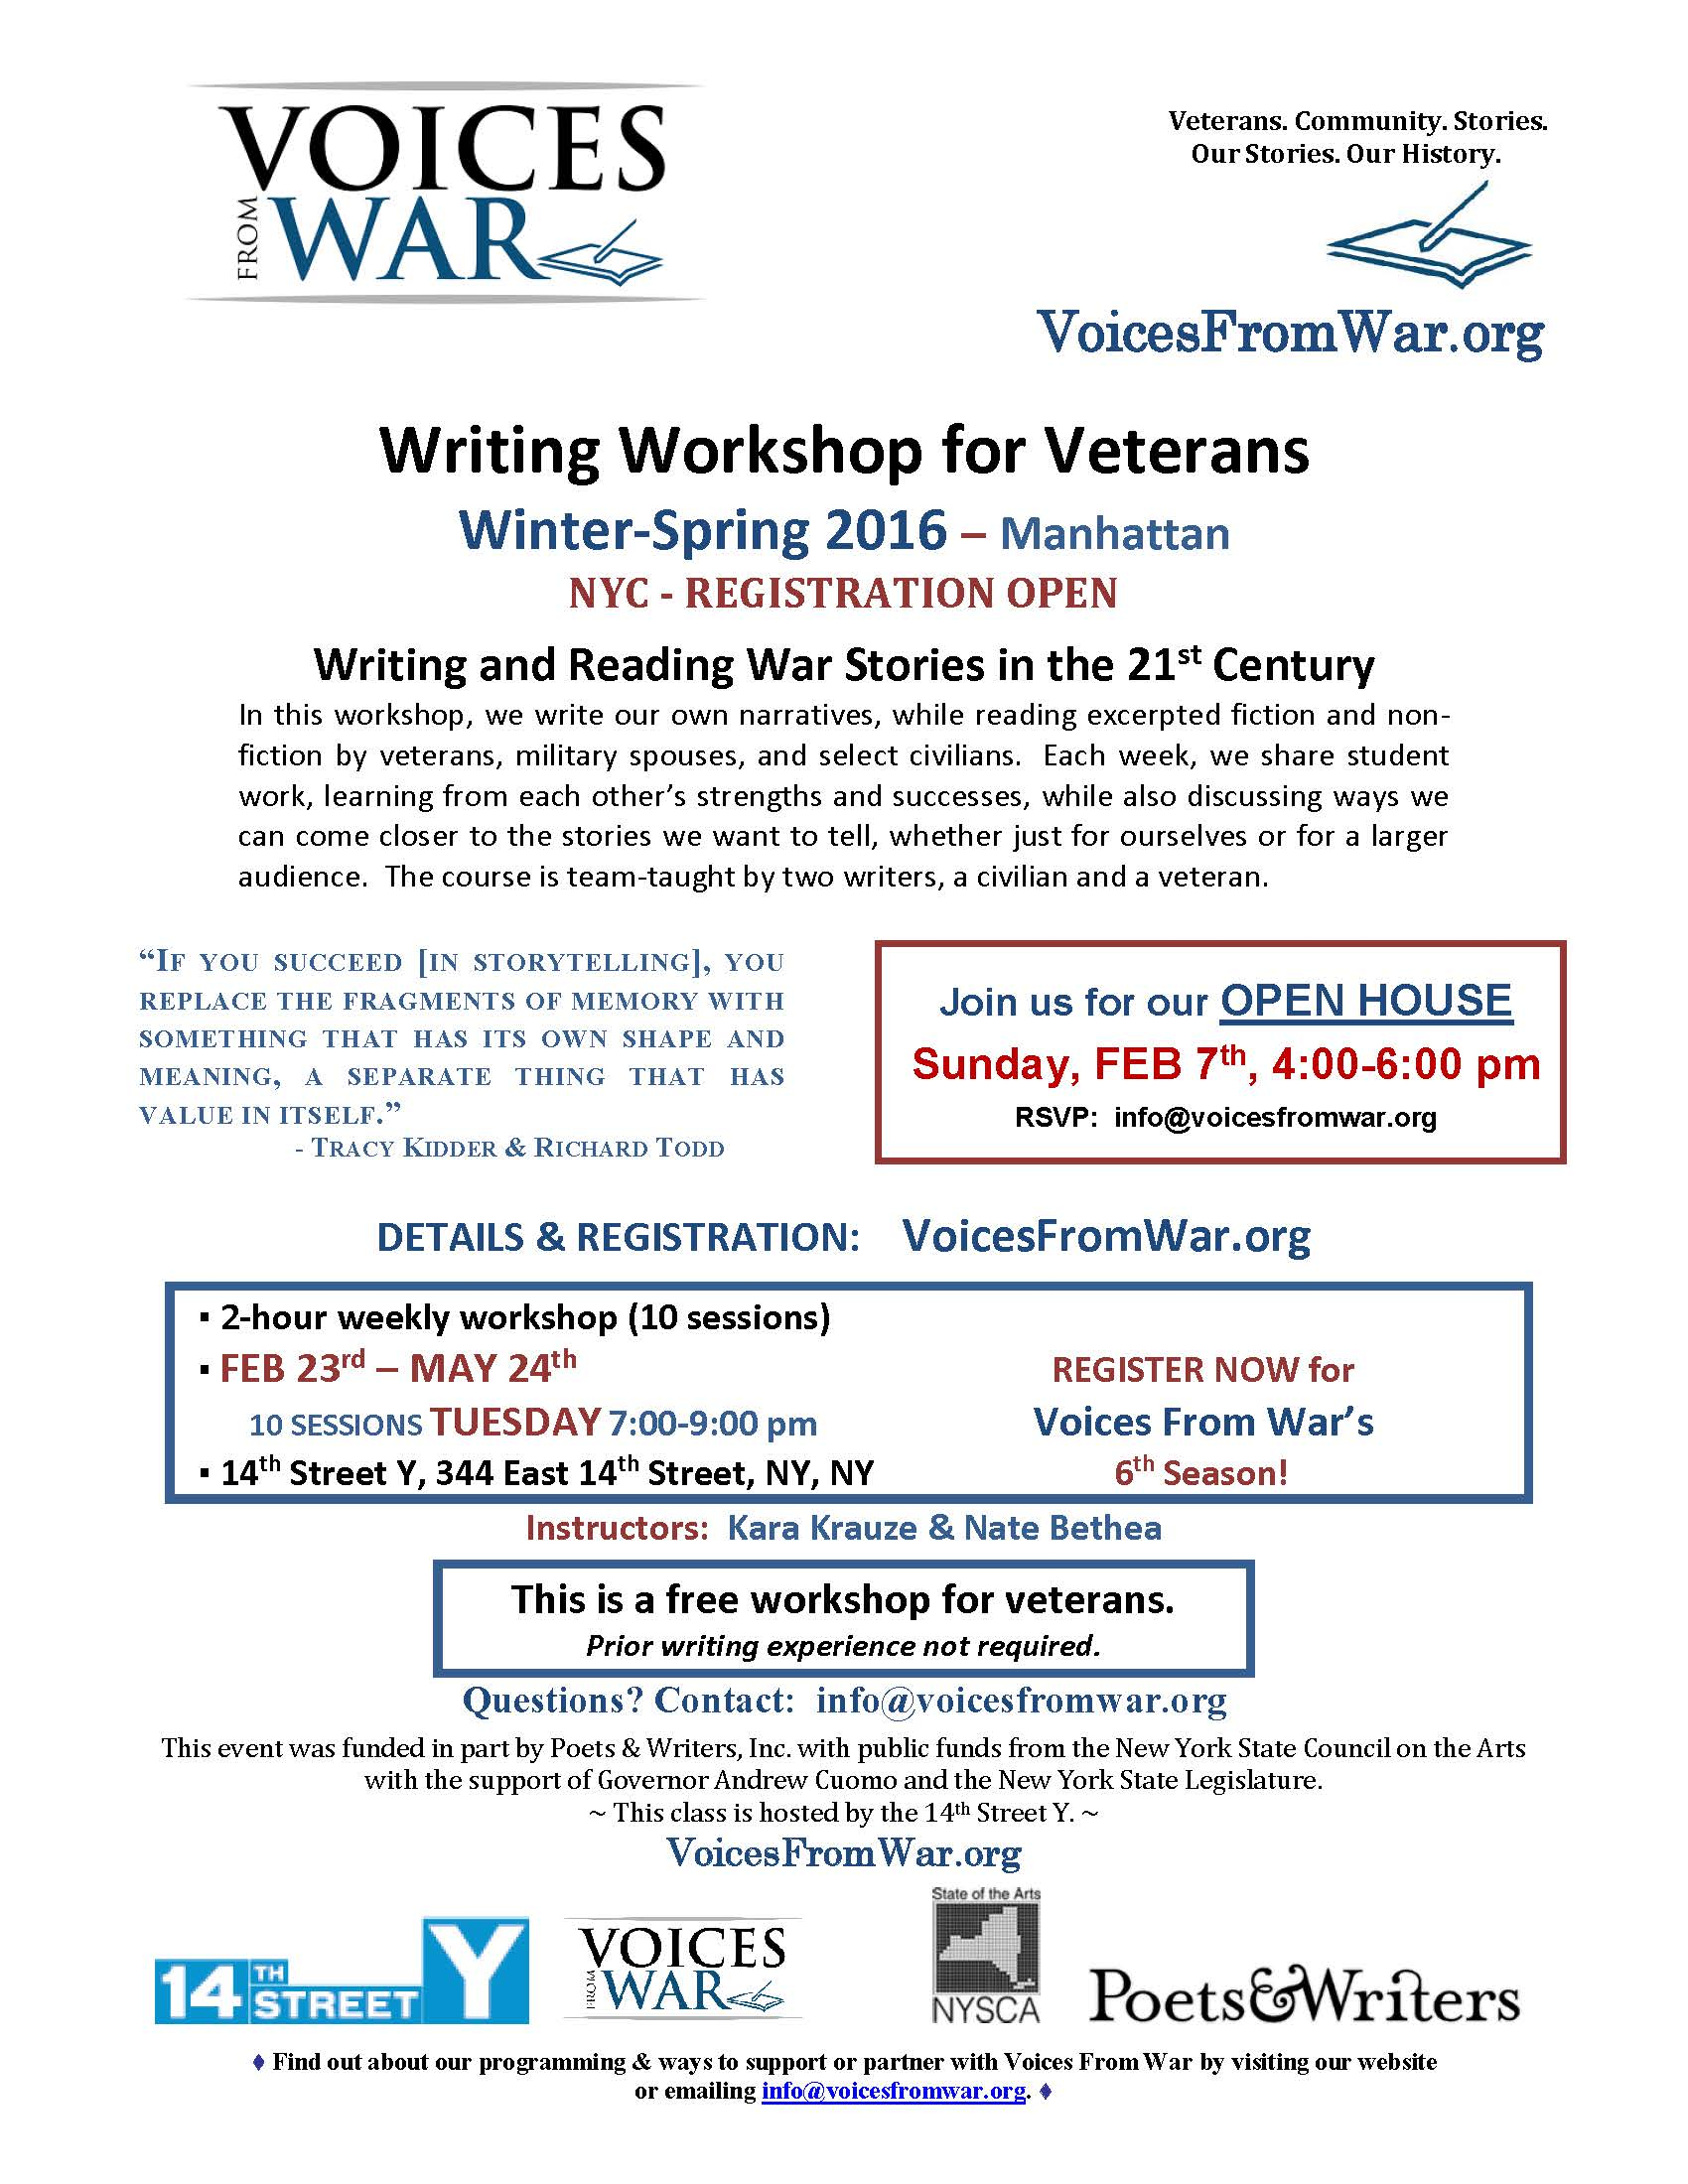 Voices_From_War__Flyer__Winter-Spring_2016